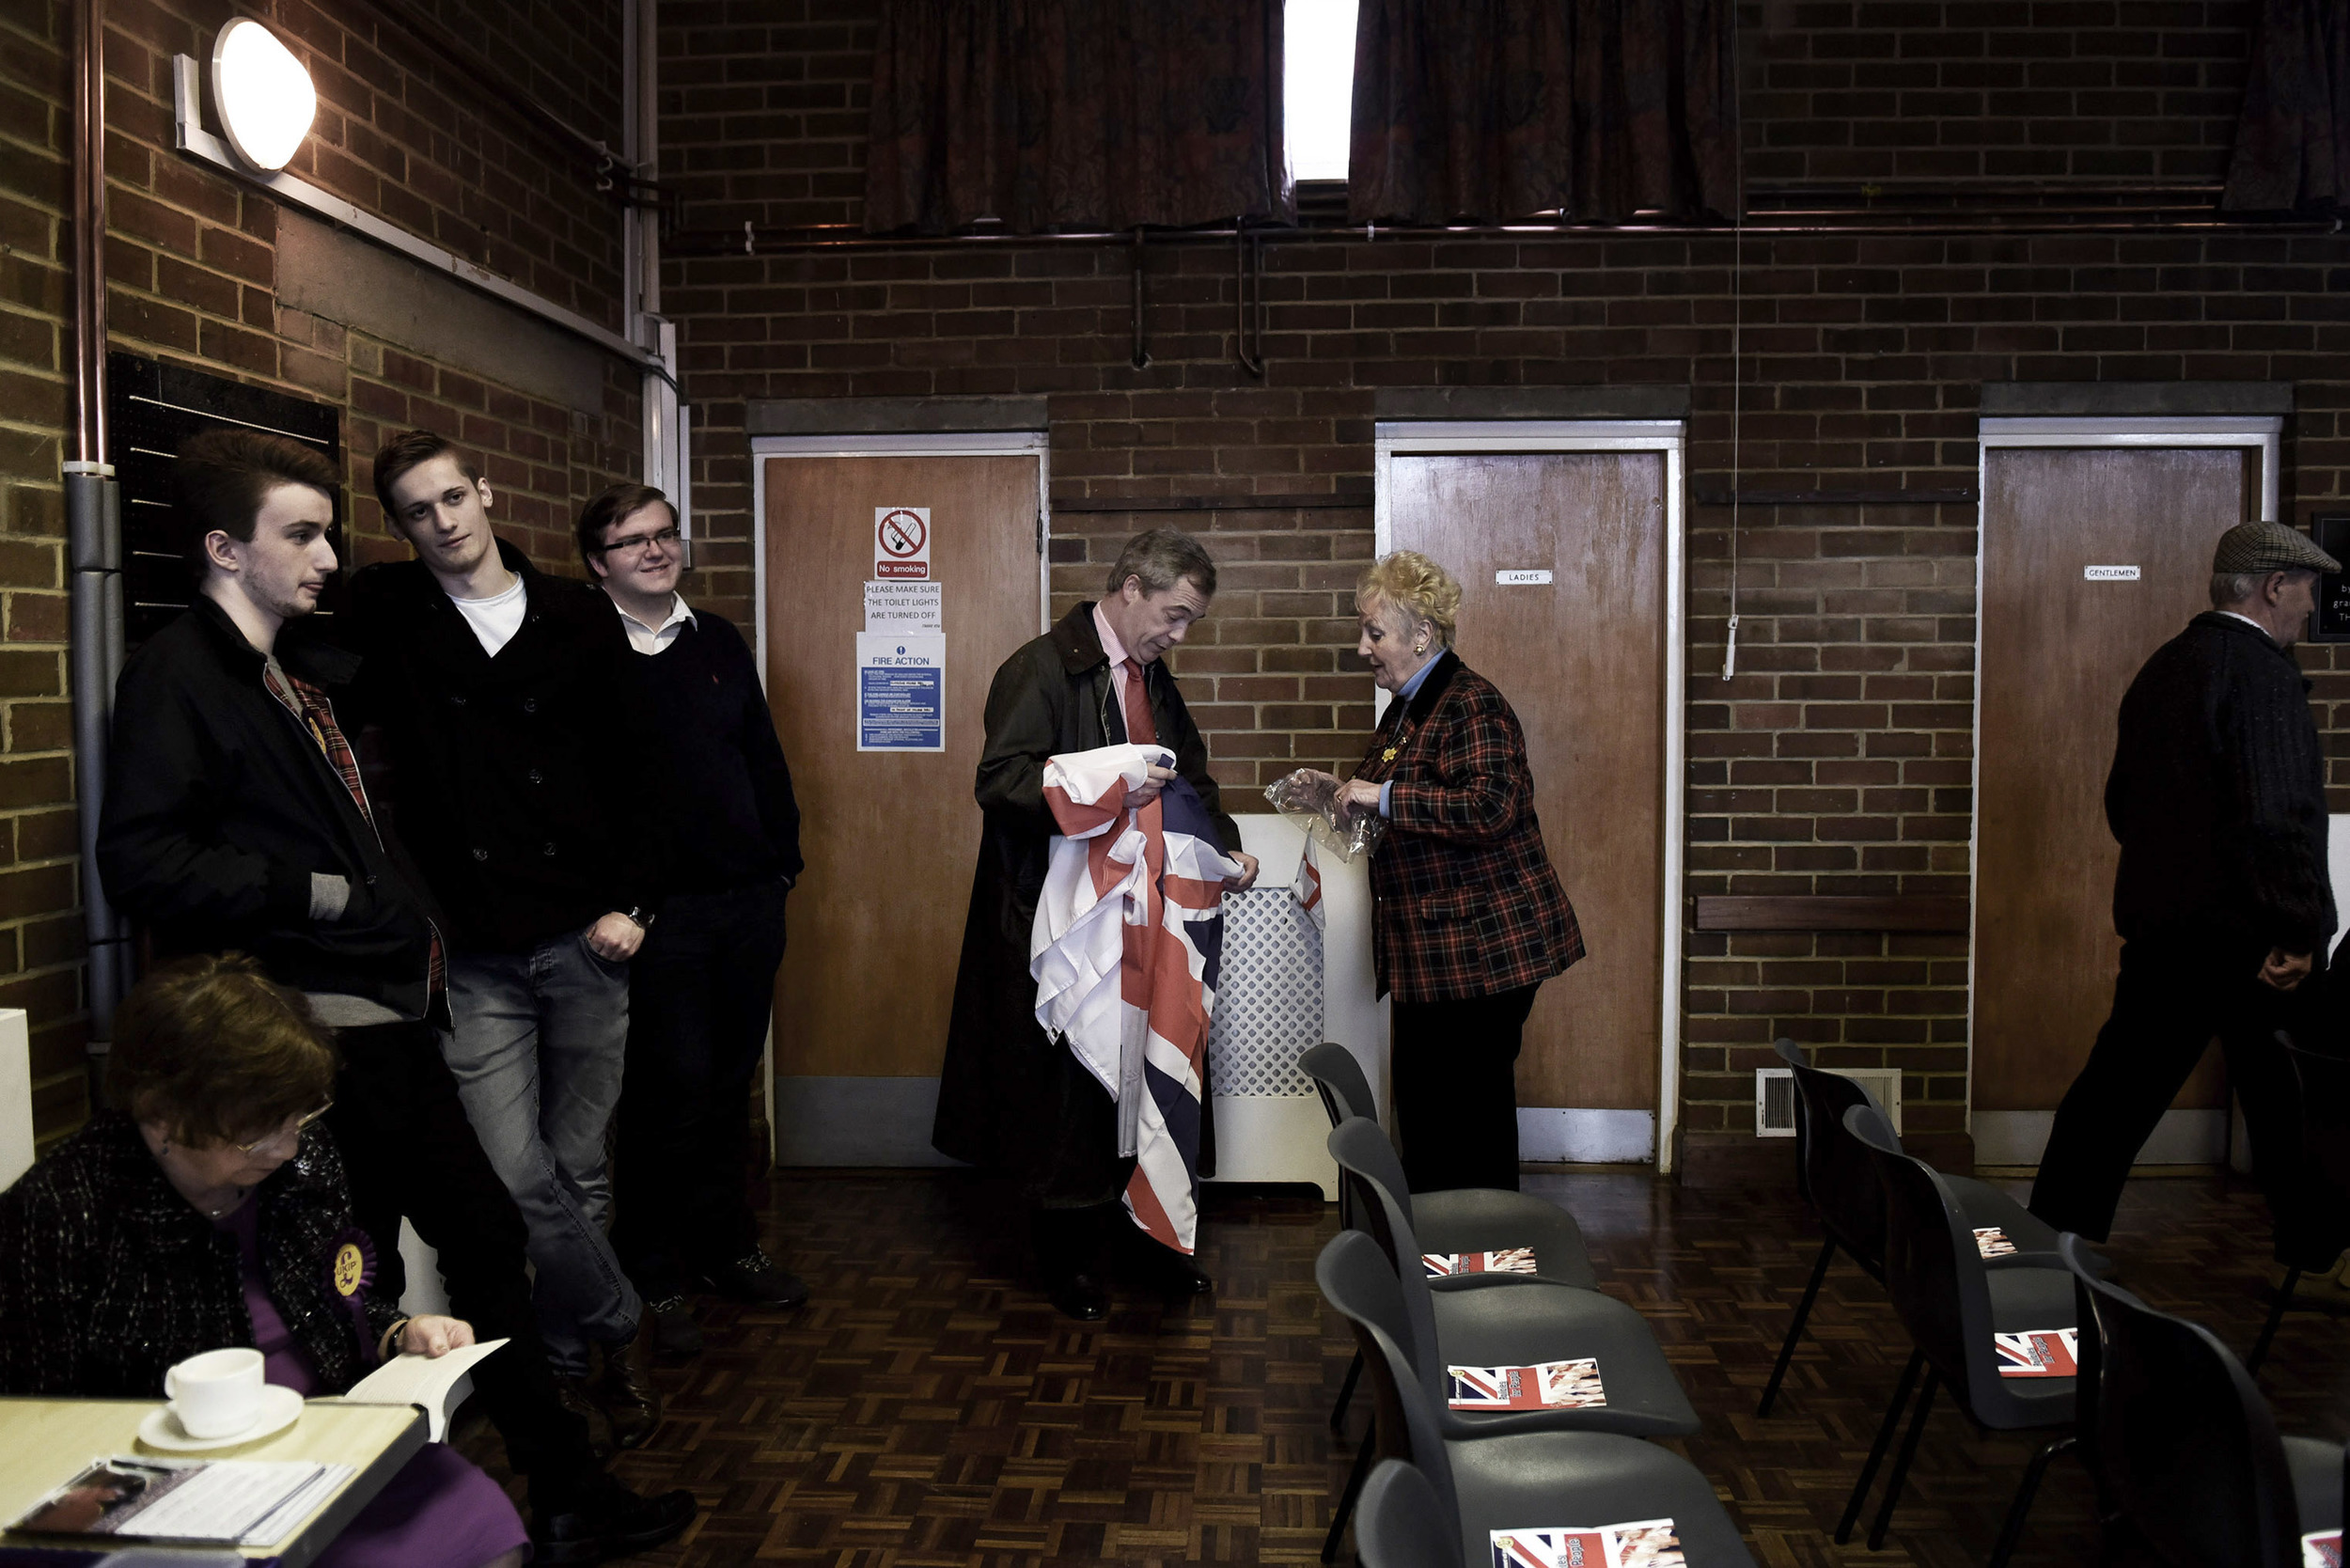 Unravelling flags with Beryl, Cliffsend Village Hall, March 31st 2015